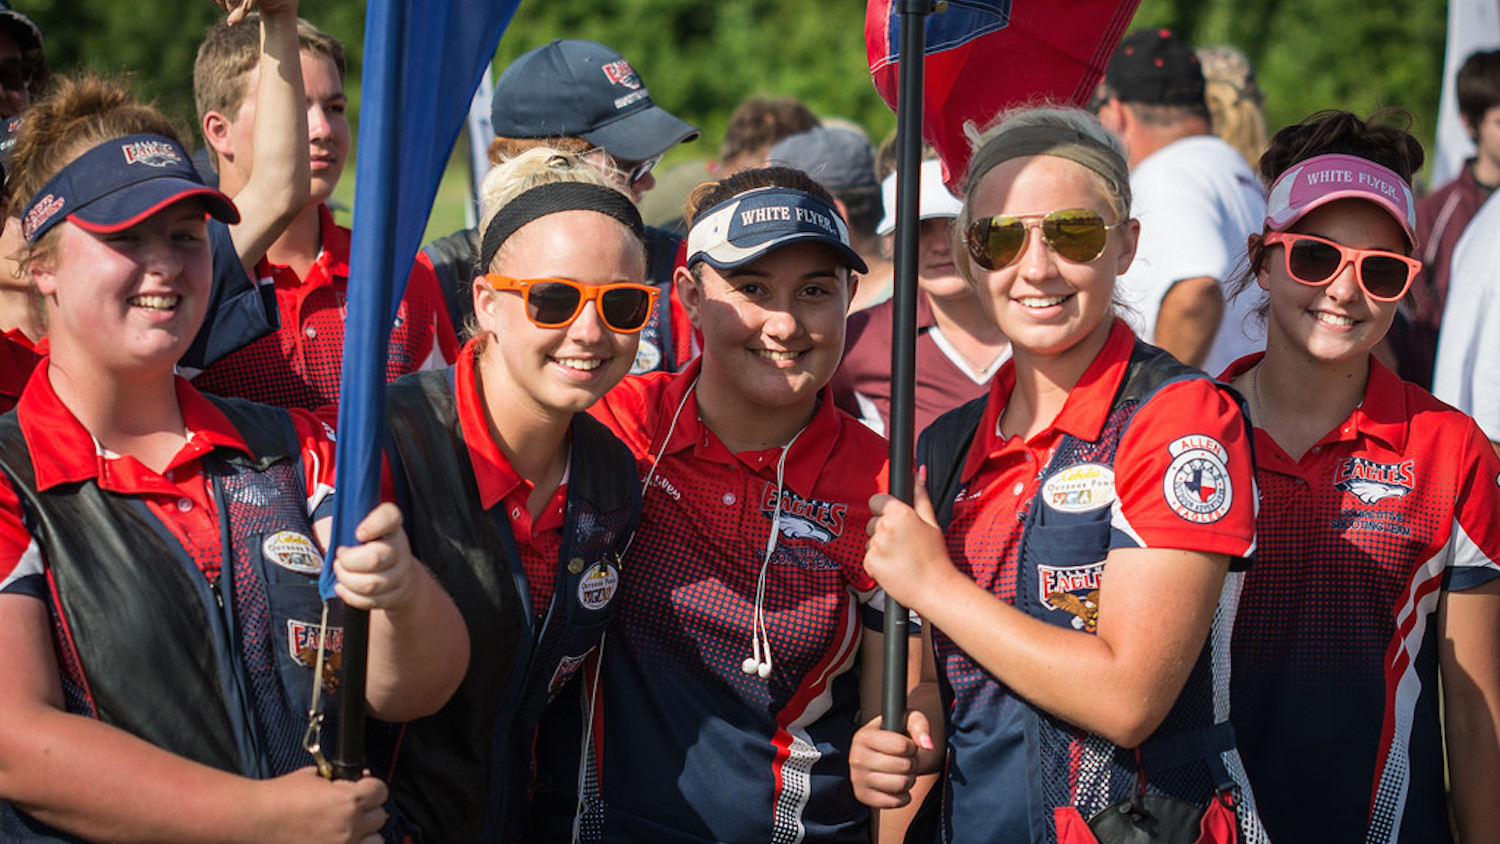 Apply Now for 2018 SSSF/NRA All Scholastic Team